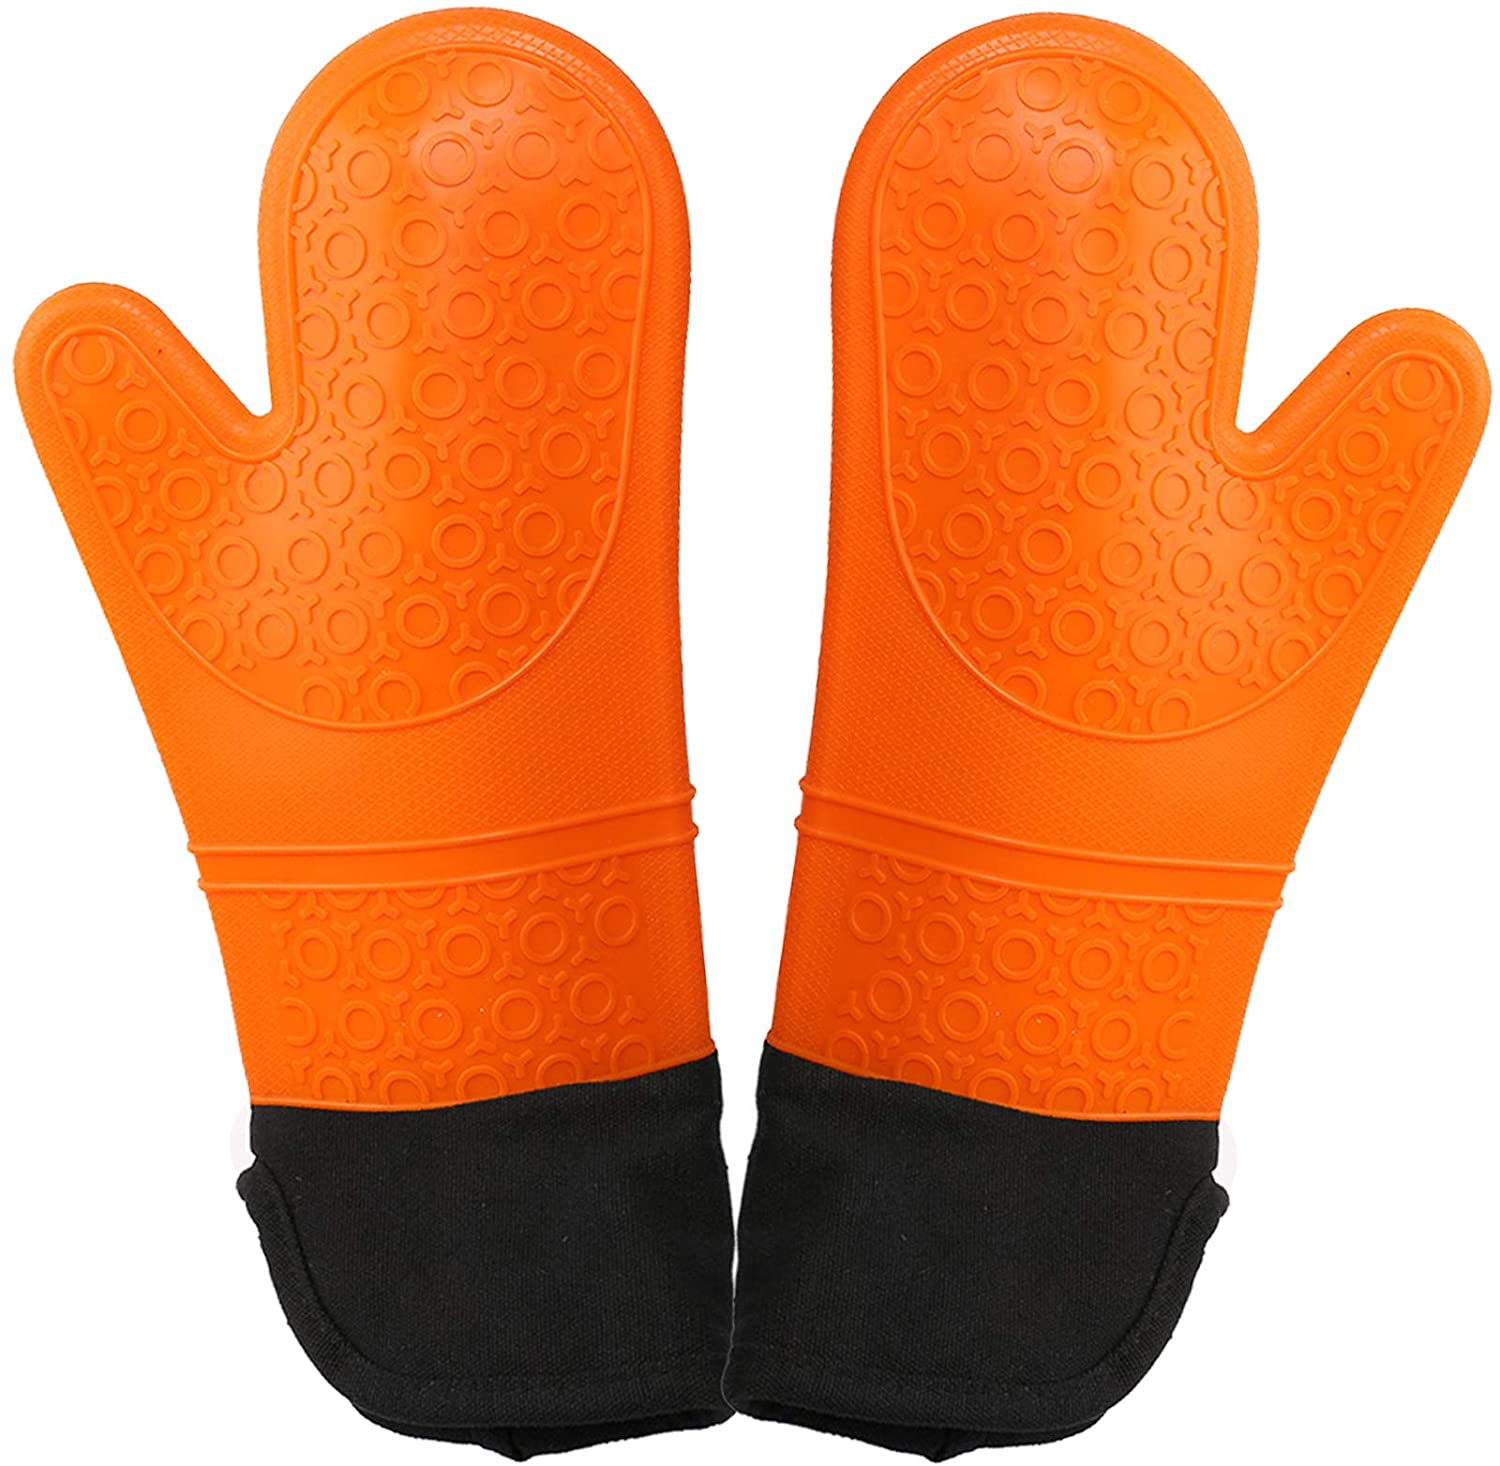 SunnyHome Hot Pads and Oven Mitts Sets, 14.7 Inch Professional Oven Gloves Heat Resistant 500 Degrees, 100% Pure Cotton Lining Flexible Oven Gloves, Non-Slip Waterproof & Easy to Clean (Orange)